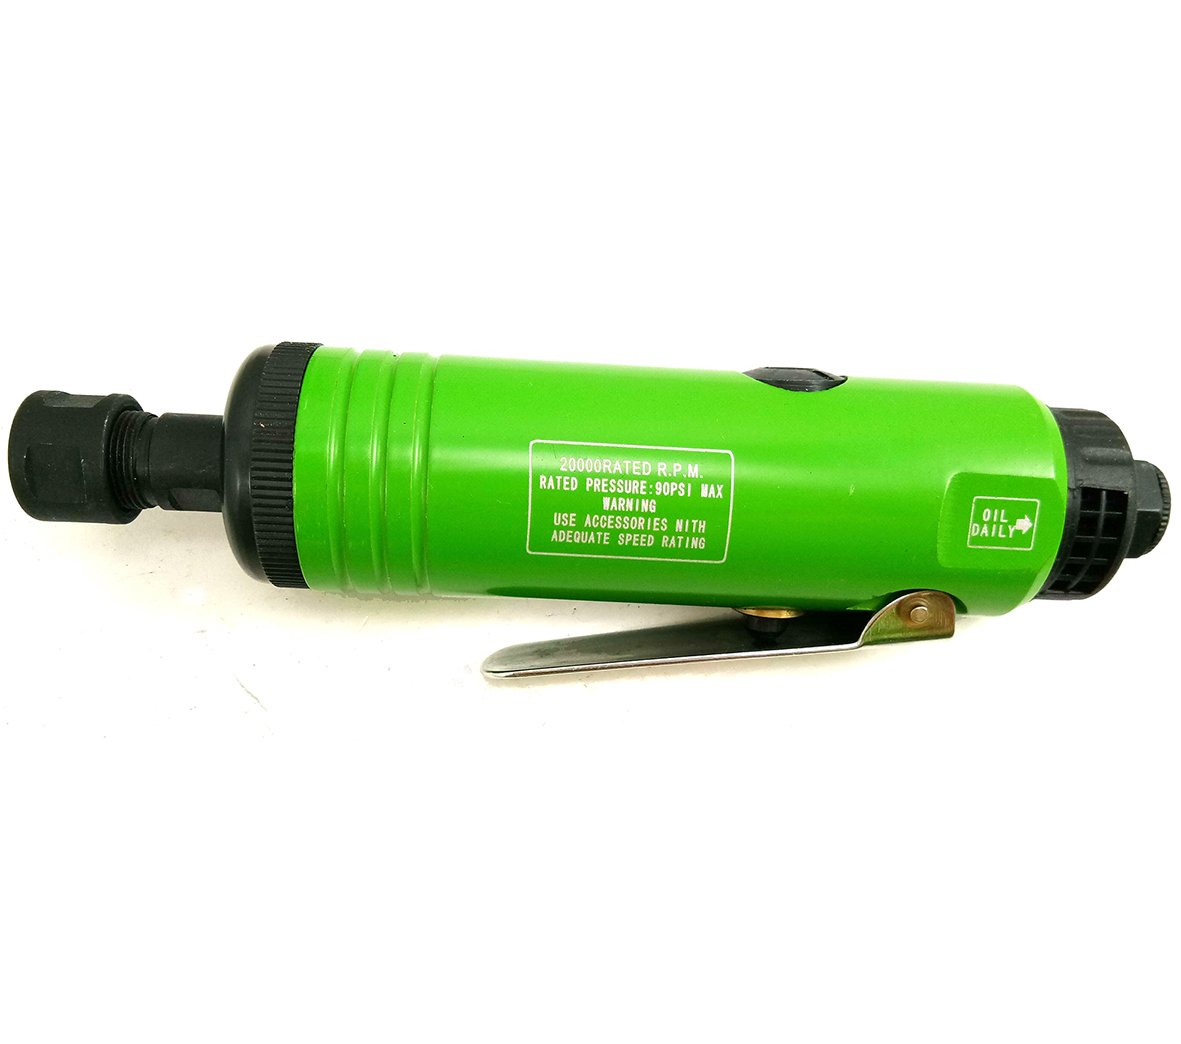 Dynamic Power Professional Mini Light weight (12.7oz) 1/4 IN. Air Straight Die Grinder with two wrenches, Complete with 1/4'' or 6mm collet (Green & Black)